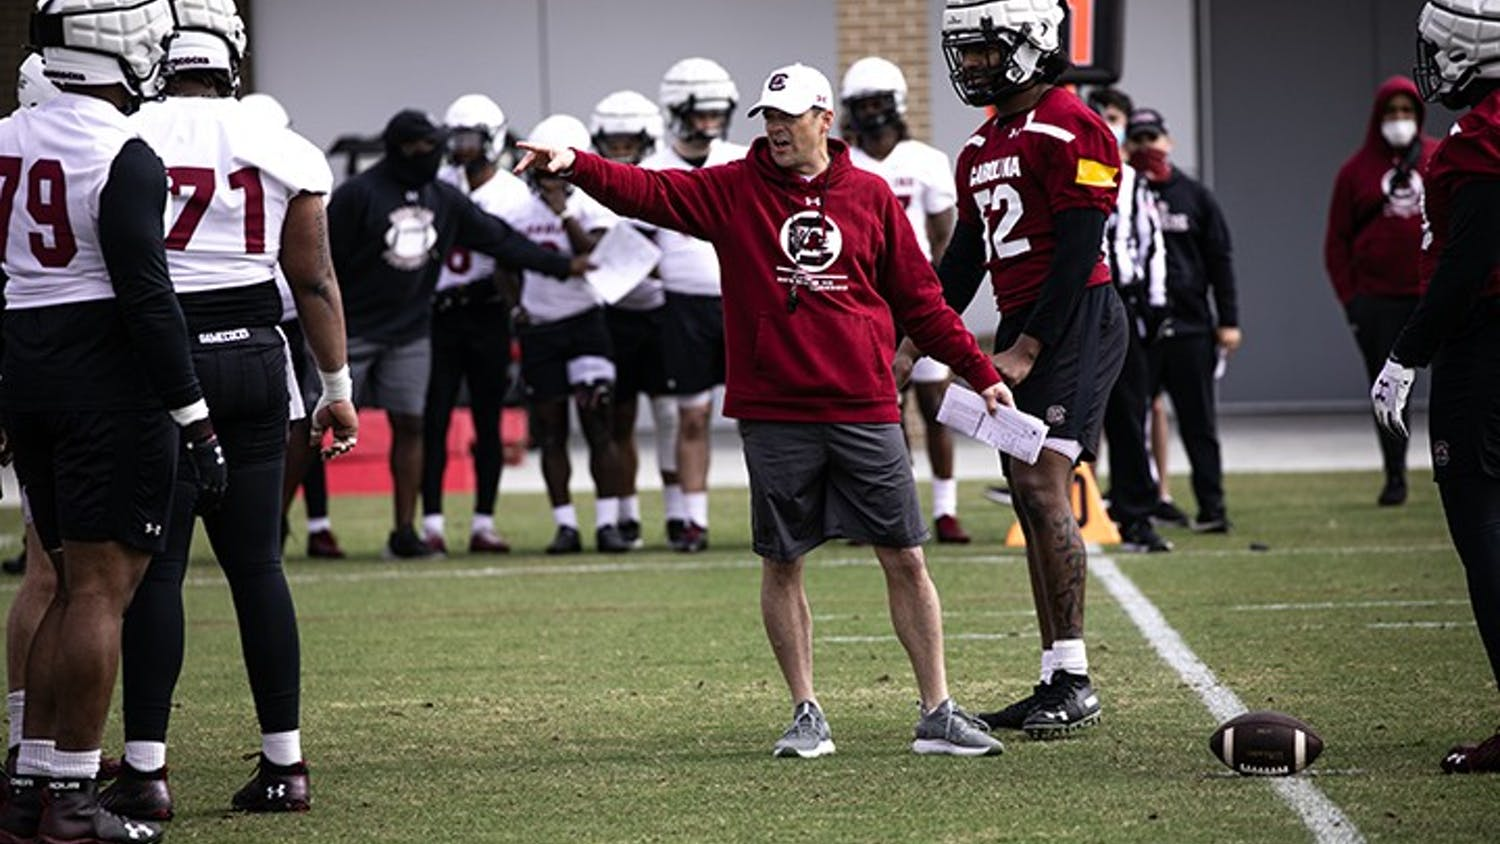 Head football coach Shane Beamer works with members of the offensive and defensive lines at the Gamecocks' first spring practice on Saturday, March 20.